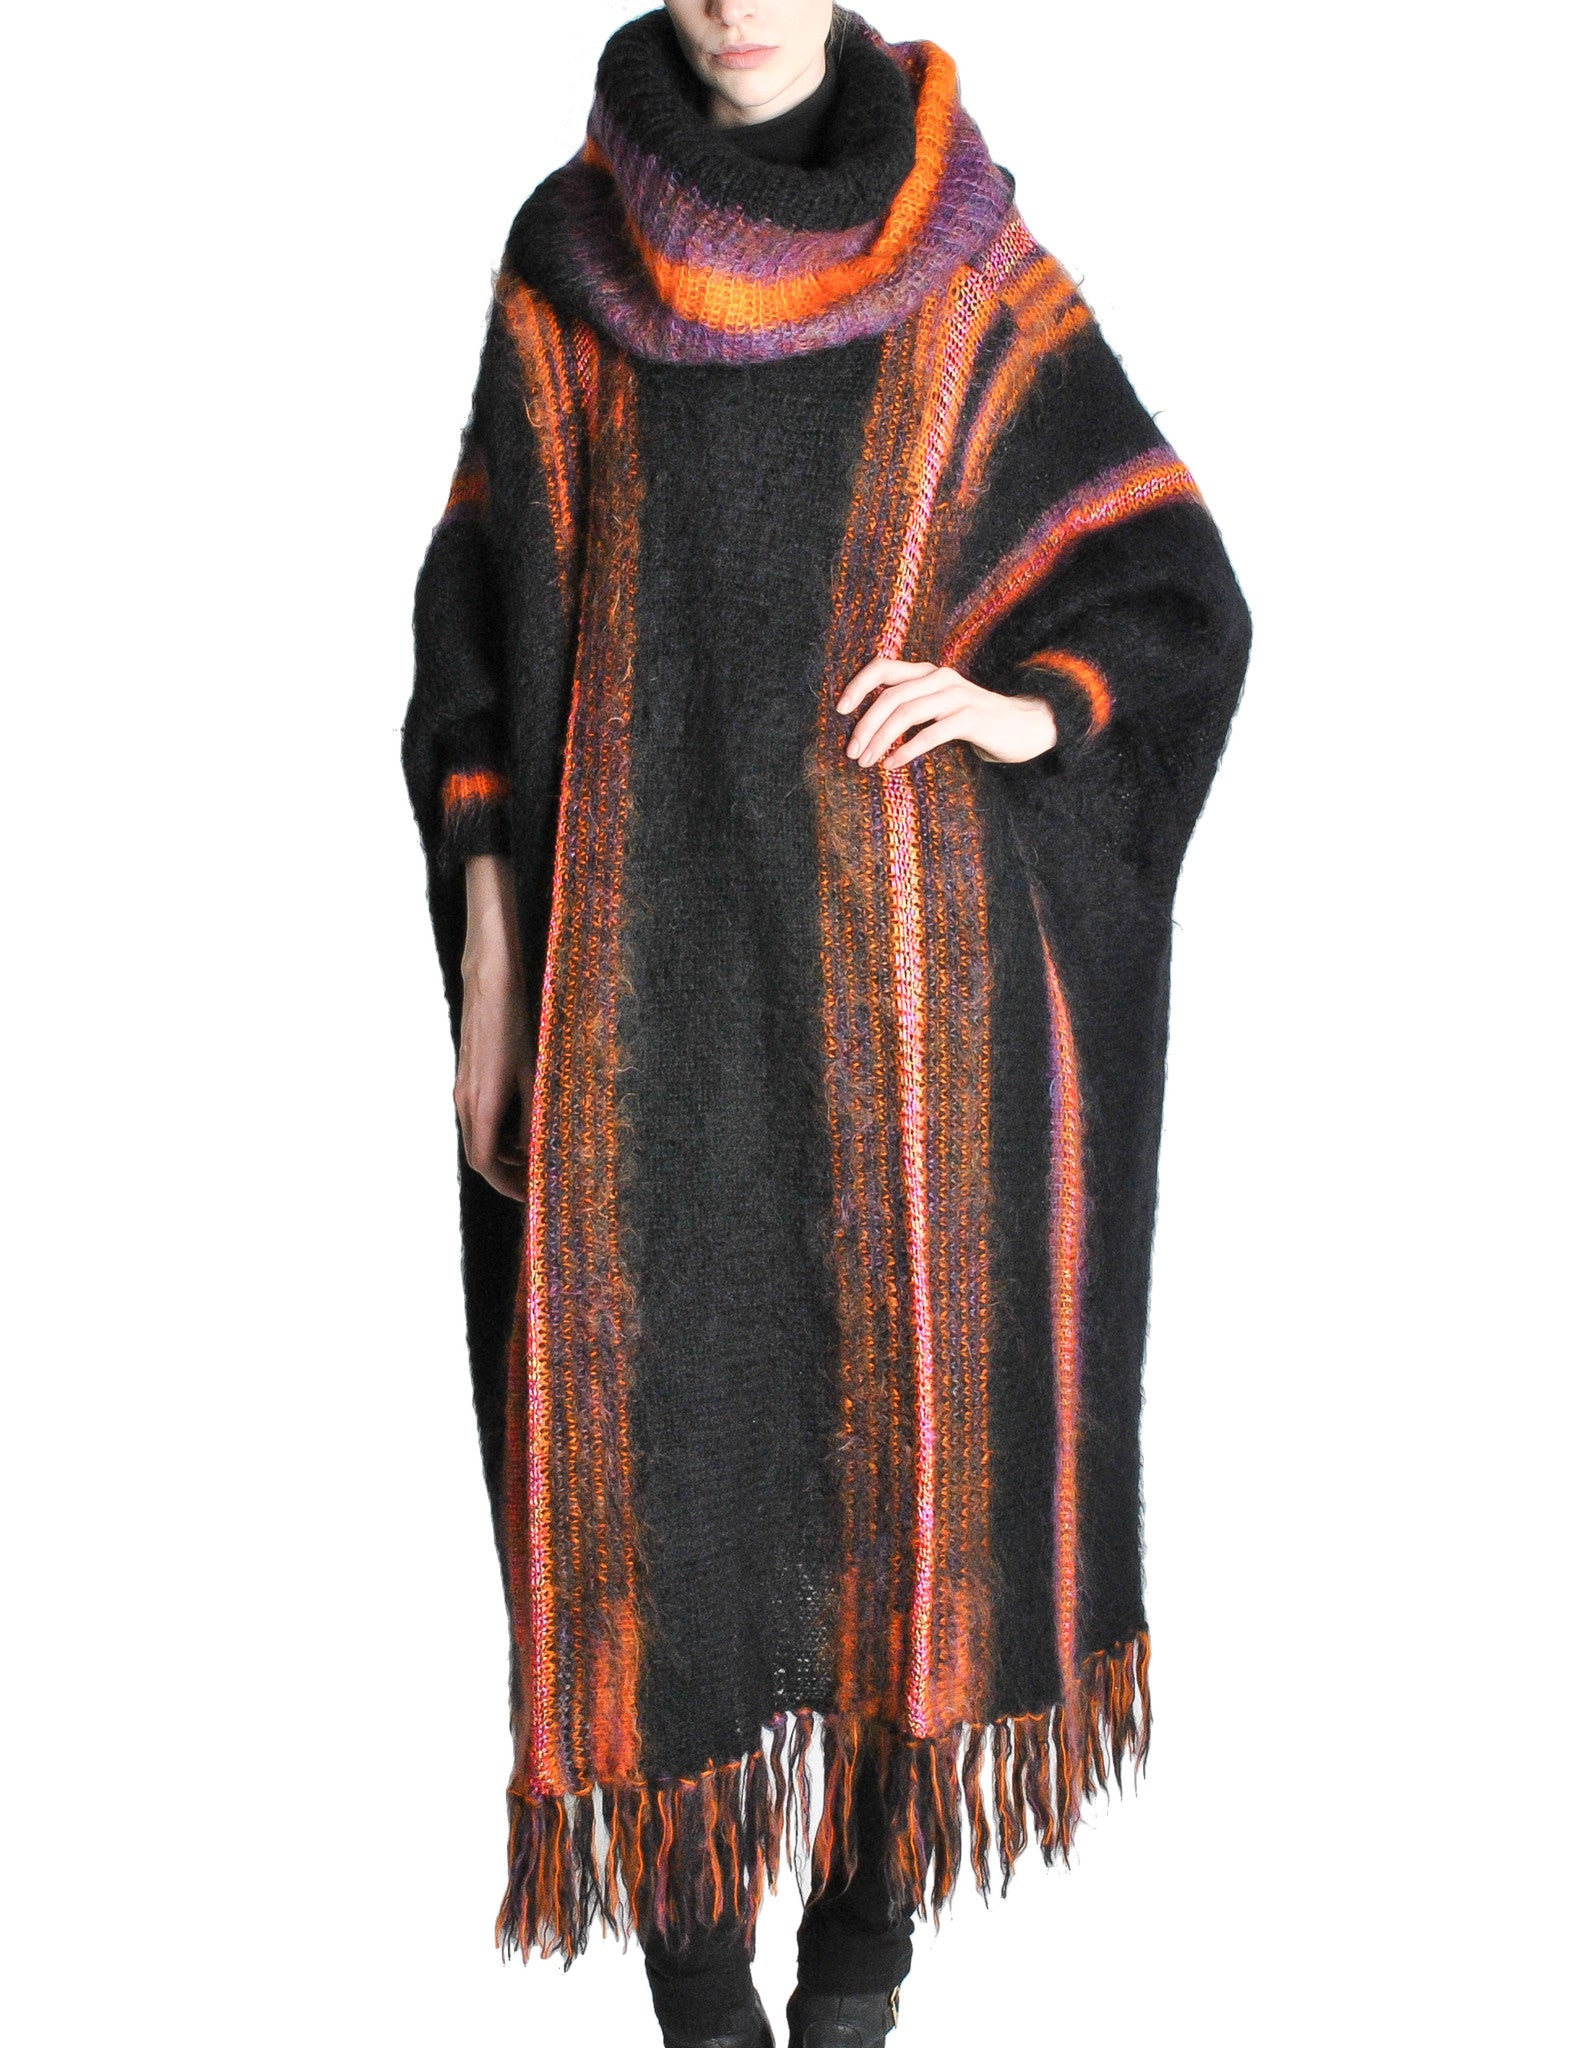 B. Altman & Co. Vintage Striped Knit Mohair Poncho - Amarcord Vintage Fashion  - 1